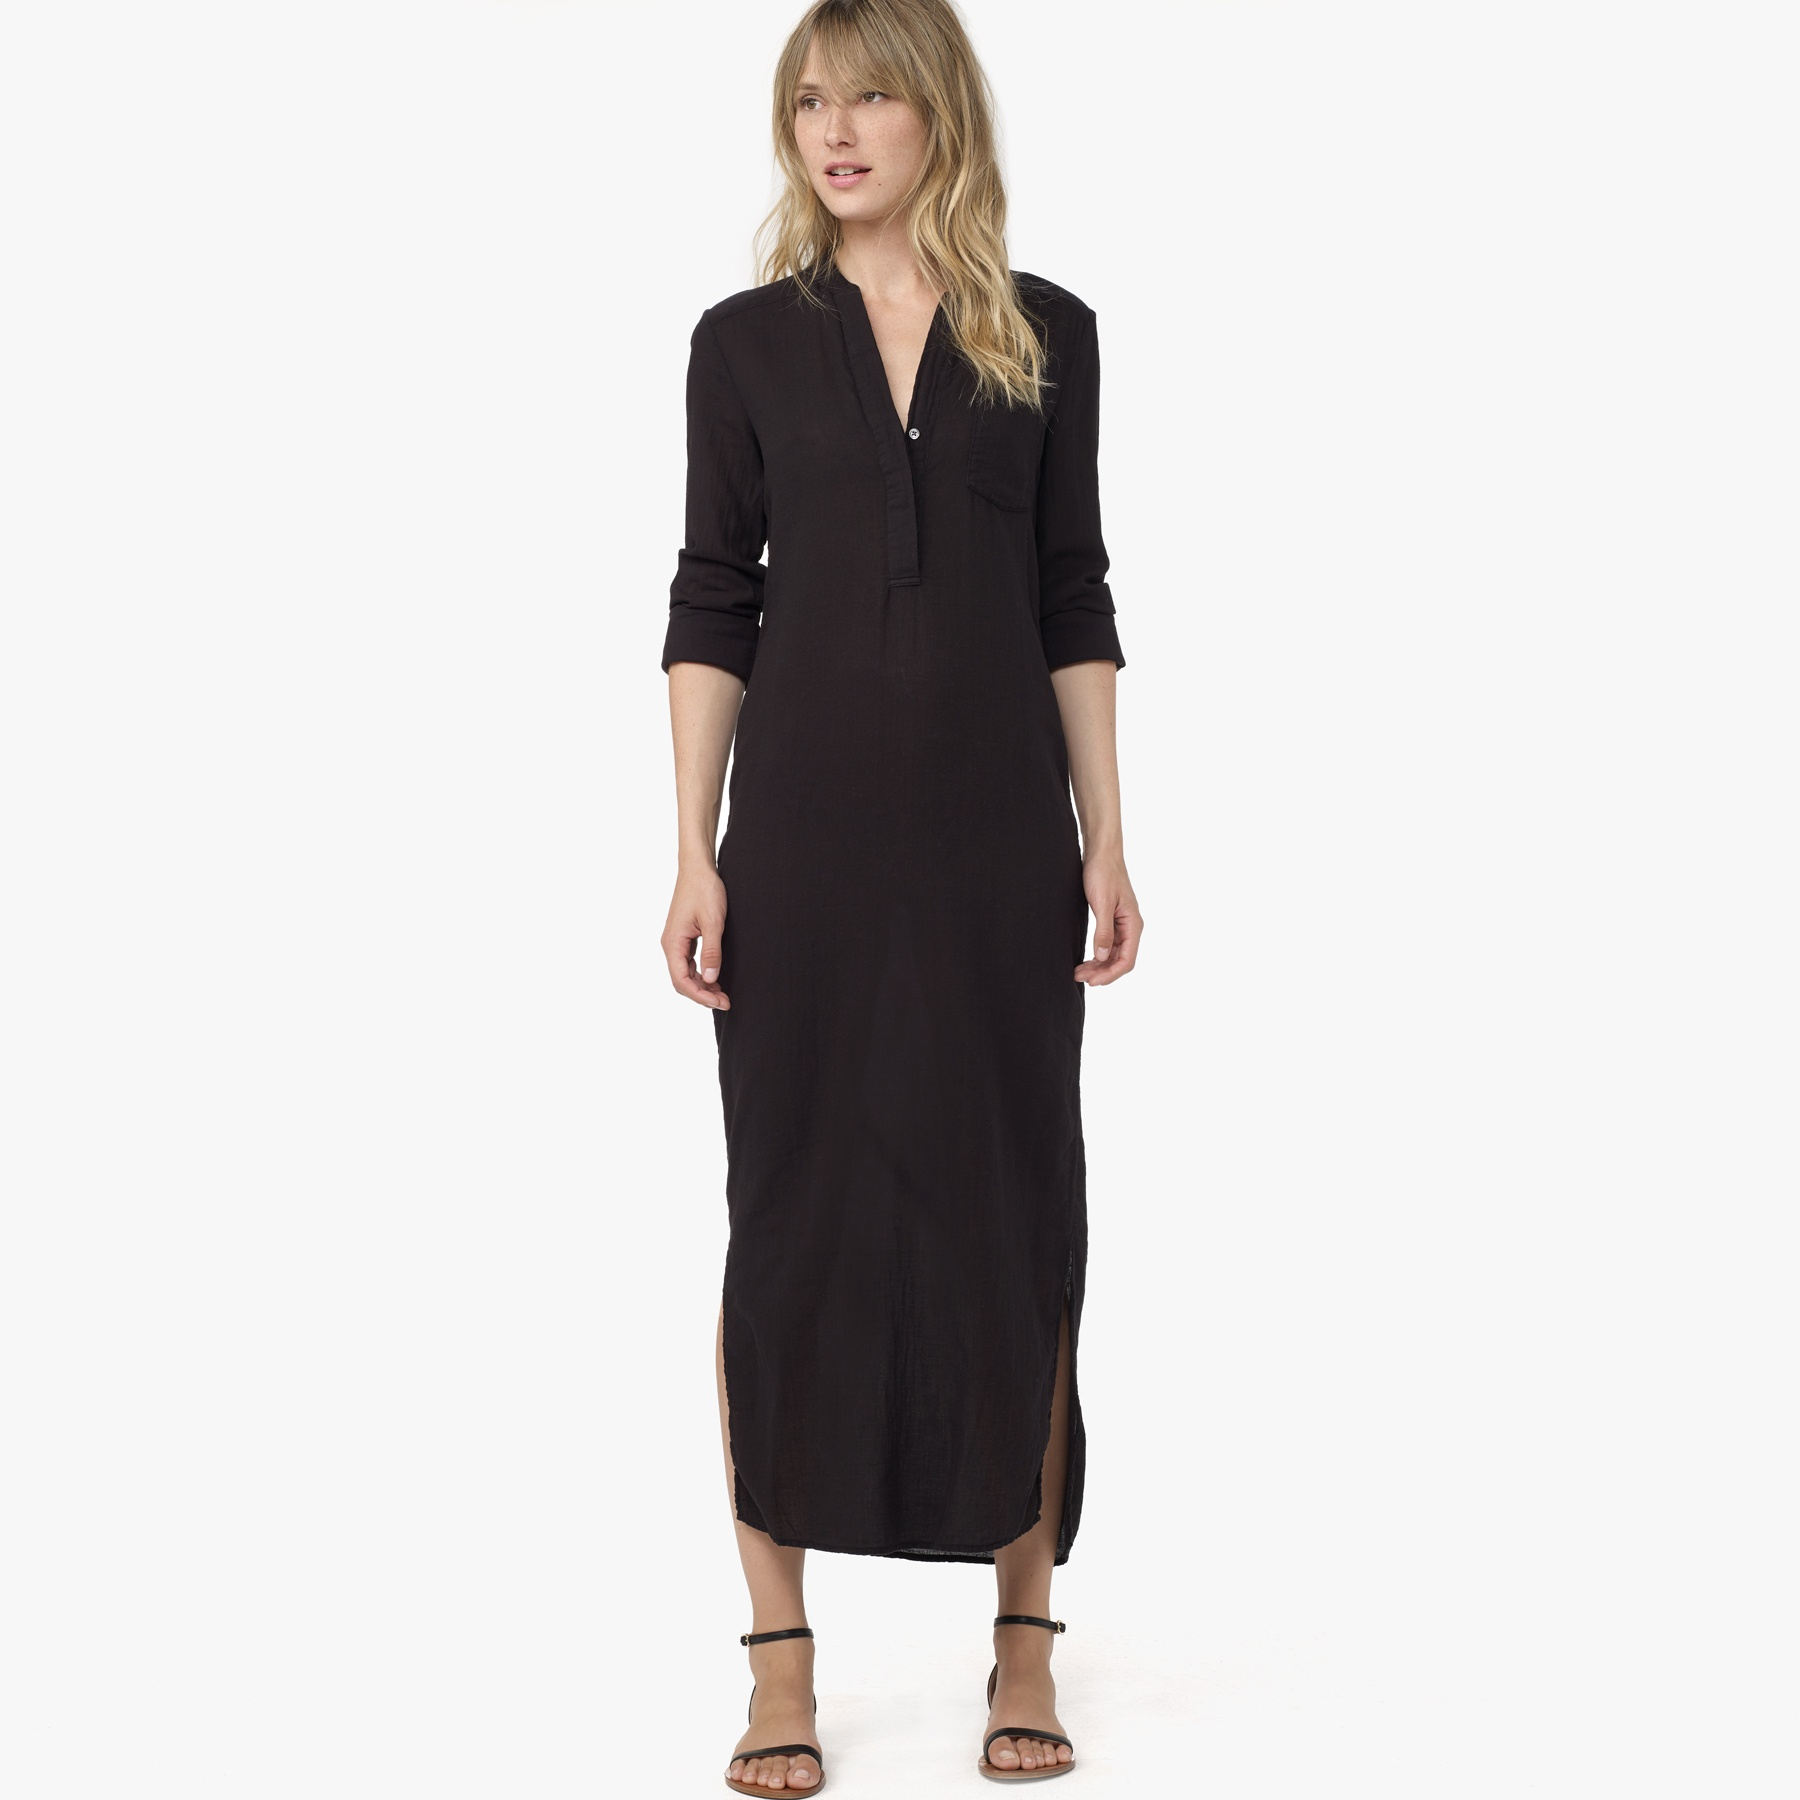 Black Cotton Dresses. Clothing & Shoes / Women's Clothing / Dresses. of Results. Casual Dresses. Tadashi Shoji Embellished Mesh Bodice Long Sleeve Evening Gown Dress Black/Nude - 2. Quick View High Secret Women's Black Cotton, Polyester Sleeveless Geometric Maxi Dress.